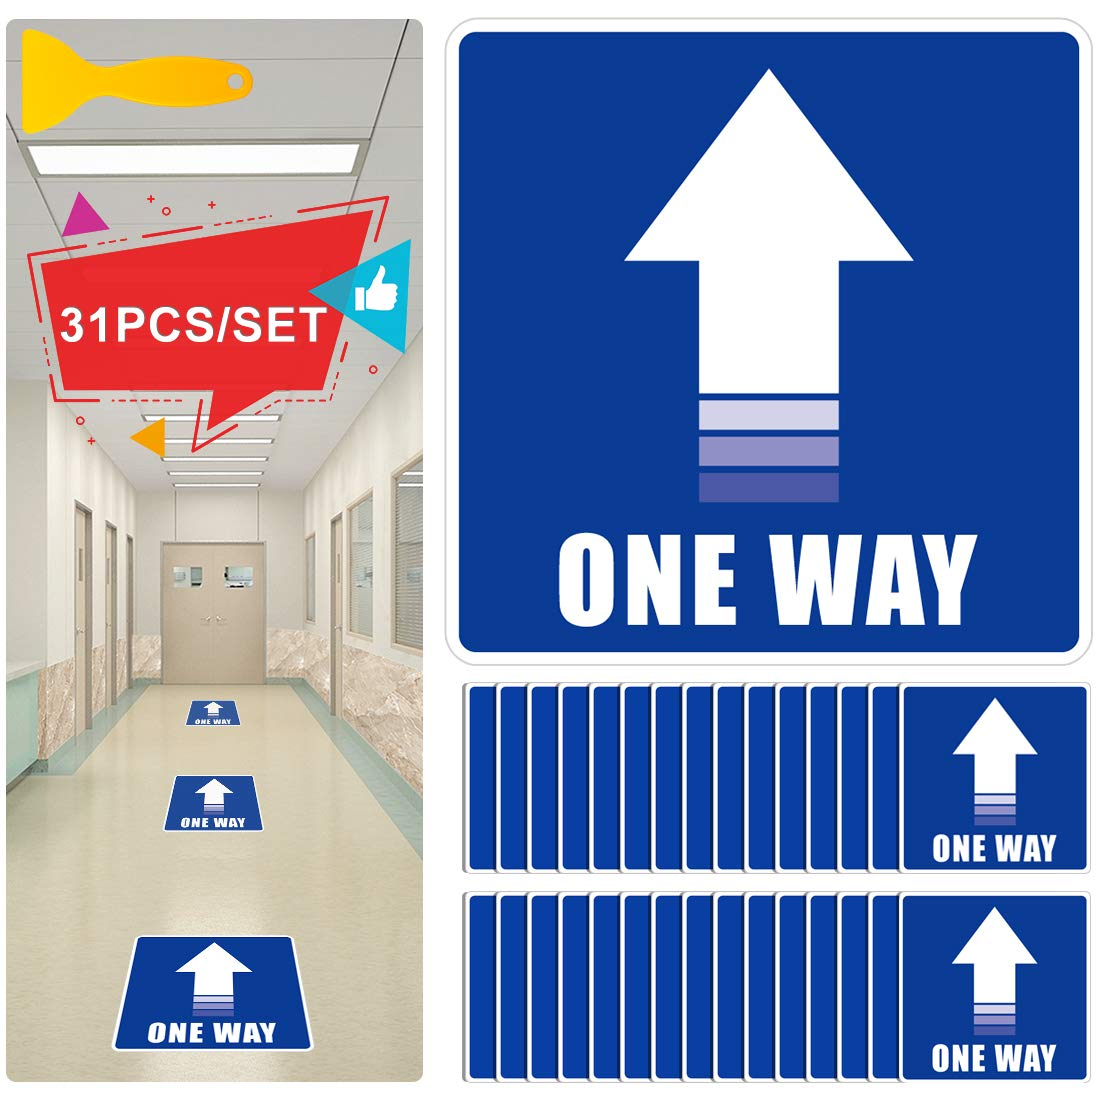 "IDJWVU 30Pcs 9.8"" x 9.8"" One Way Directional Arrow Floor Stickers Social Distance Floor Decals Non-Slip Removable Vinyl Safety Arrow Sign Markers for Wall Floor of Mall Store Office Grocery(Blue)"